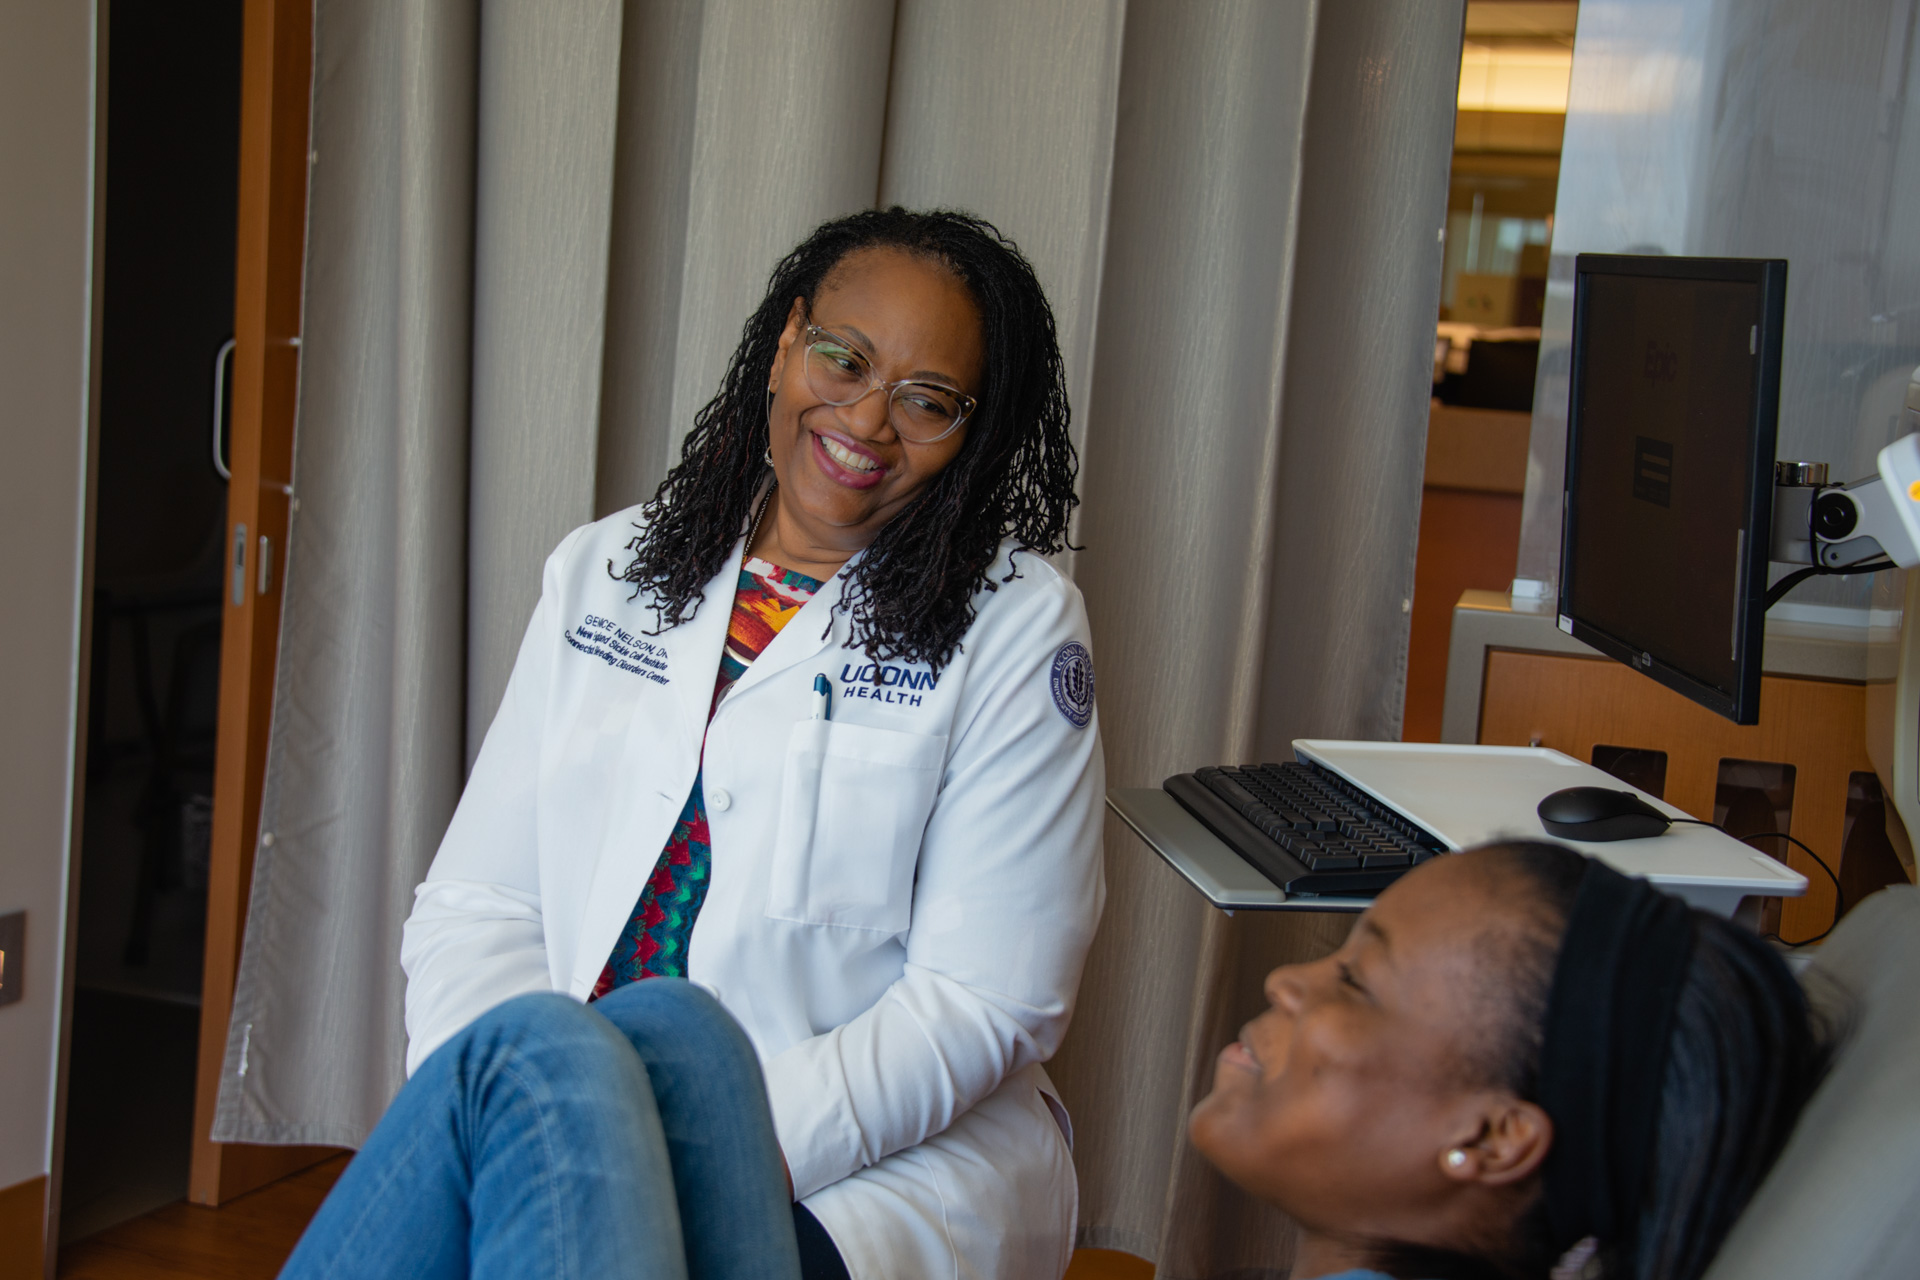 Dr. Genice Nelson